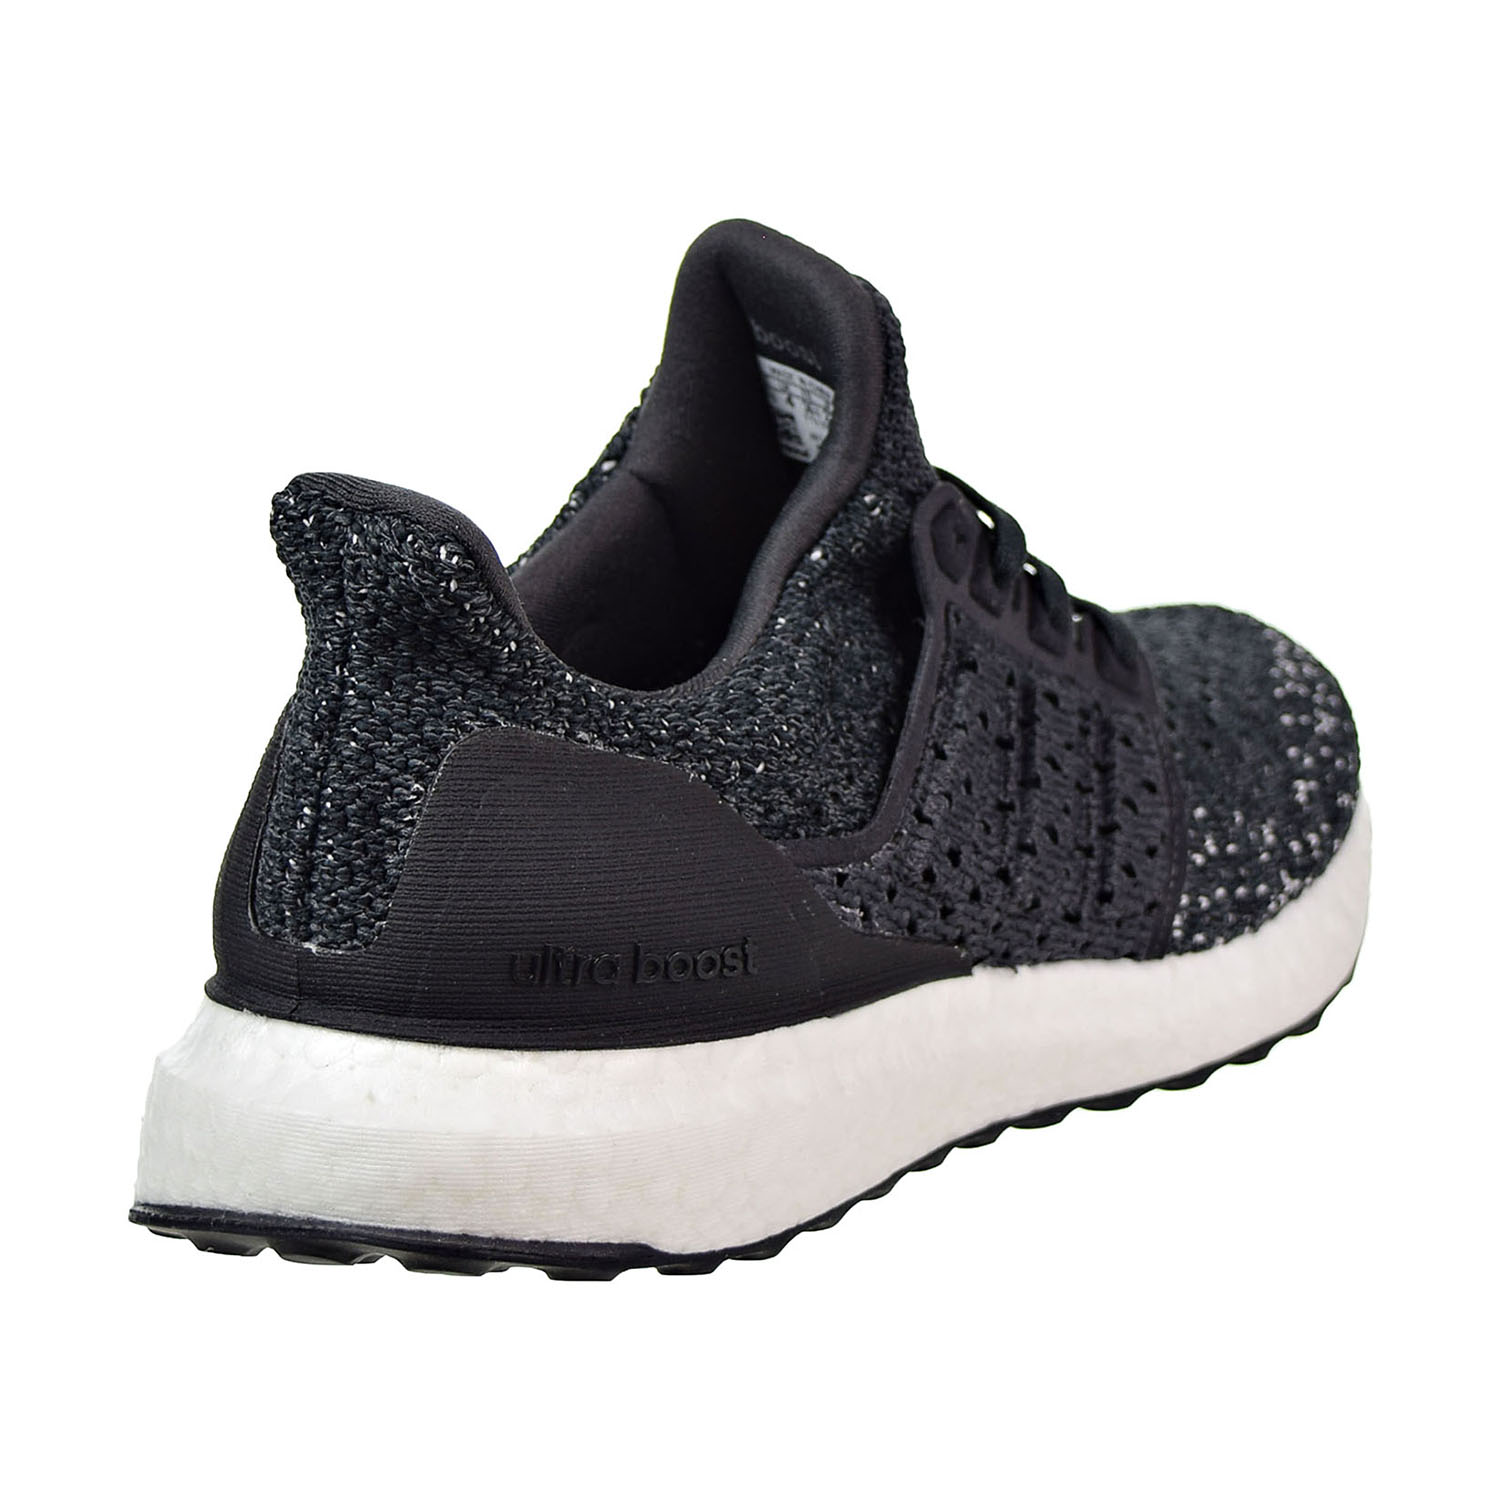 new style 67cc8 19c0e Adidas UltraBoost Clima Big Kids  Running Shoes Carbon Carbon Orchid Tint  db1426